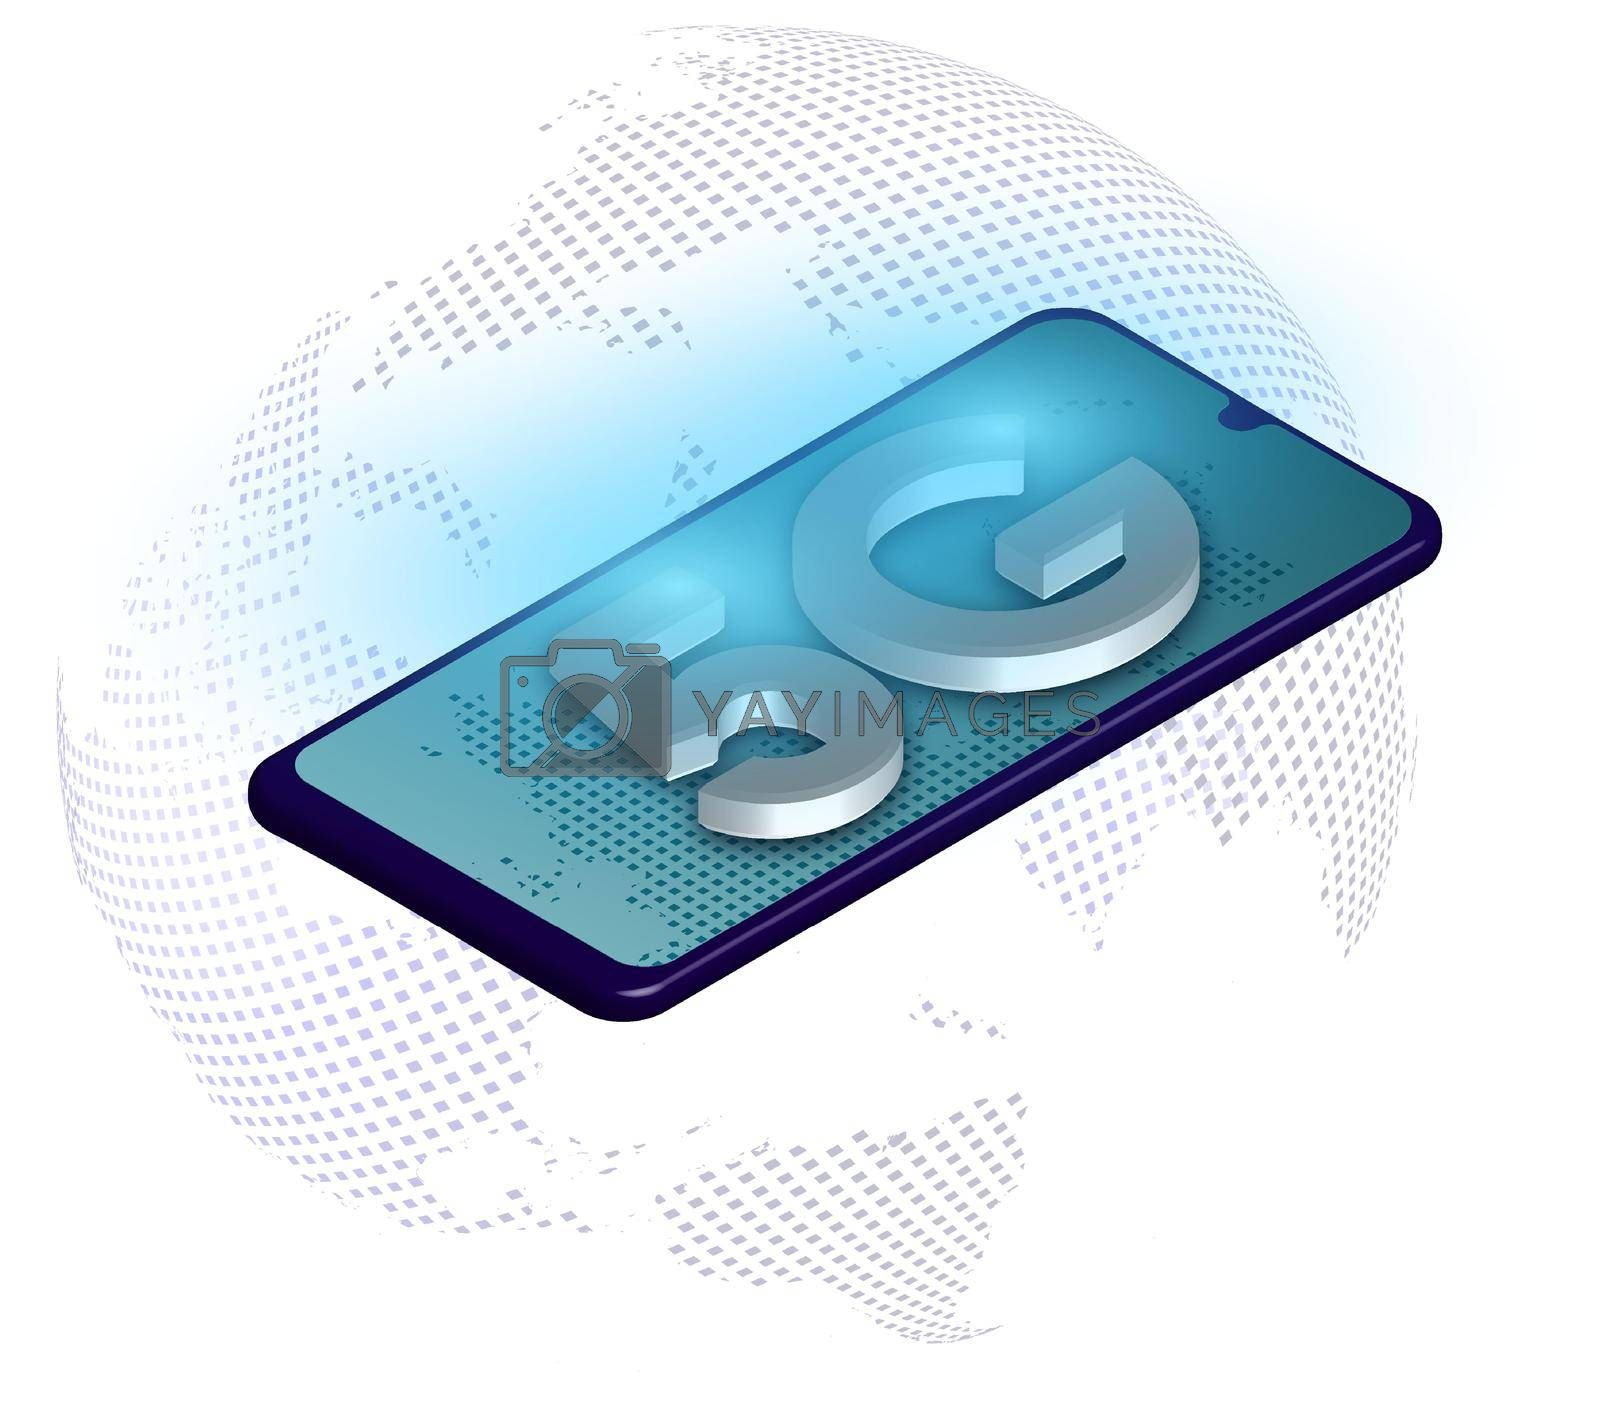 Royalty free image of 5G sign on the background of the globe and a smartphone in digital style. The new standard for internet connectivity. High speed network global network on blue background by RNko